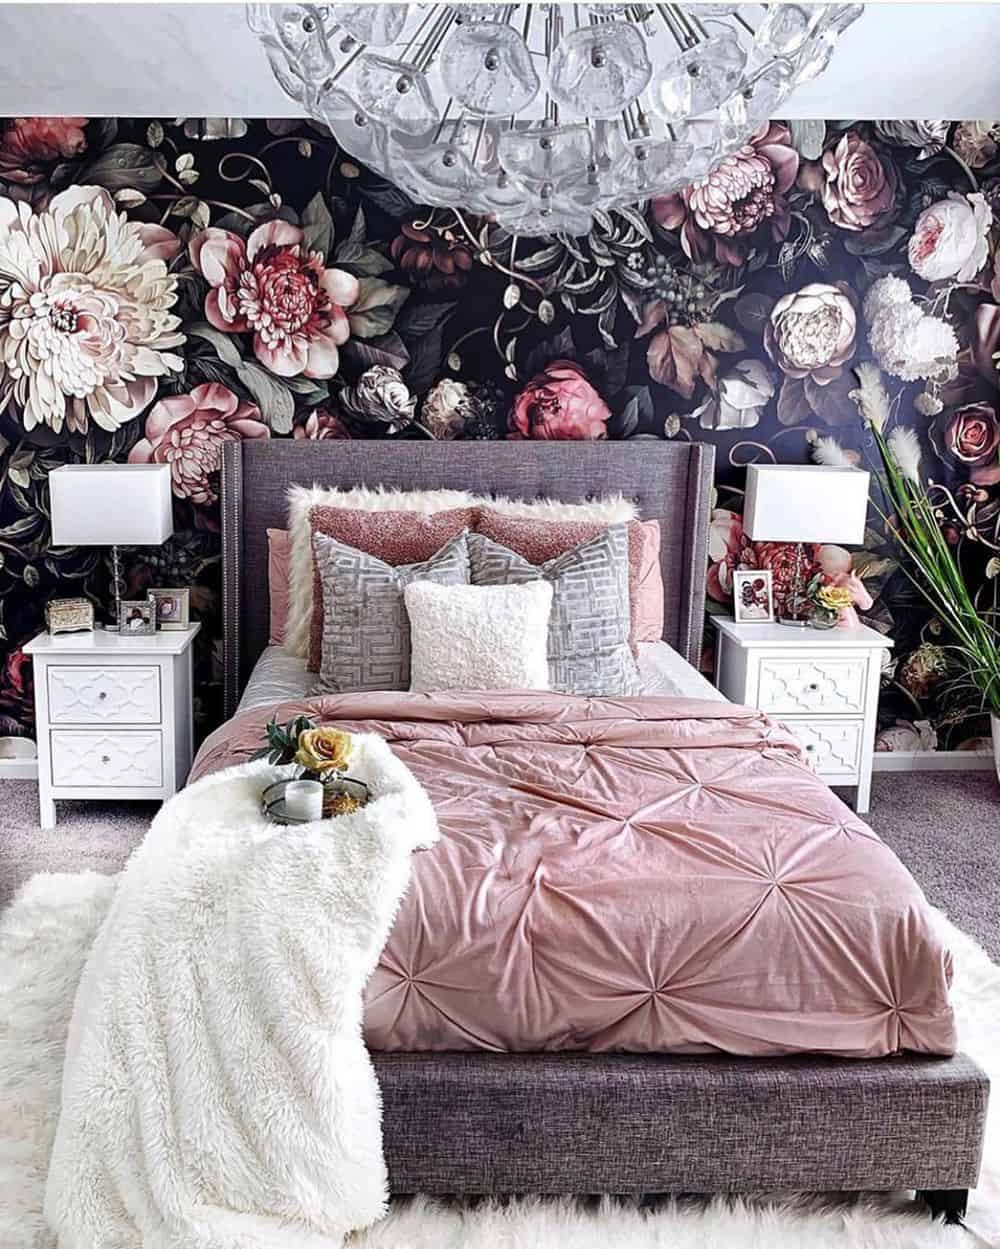 Cool Bedroom Ideas for the Ultimate Comfort - Wallpaper or Wall Print